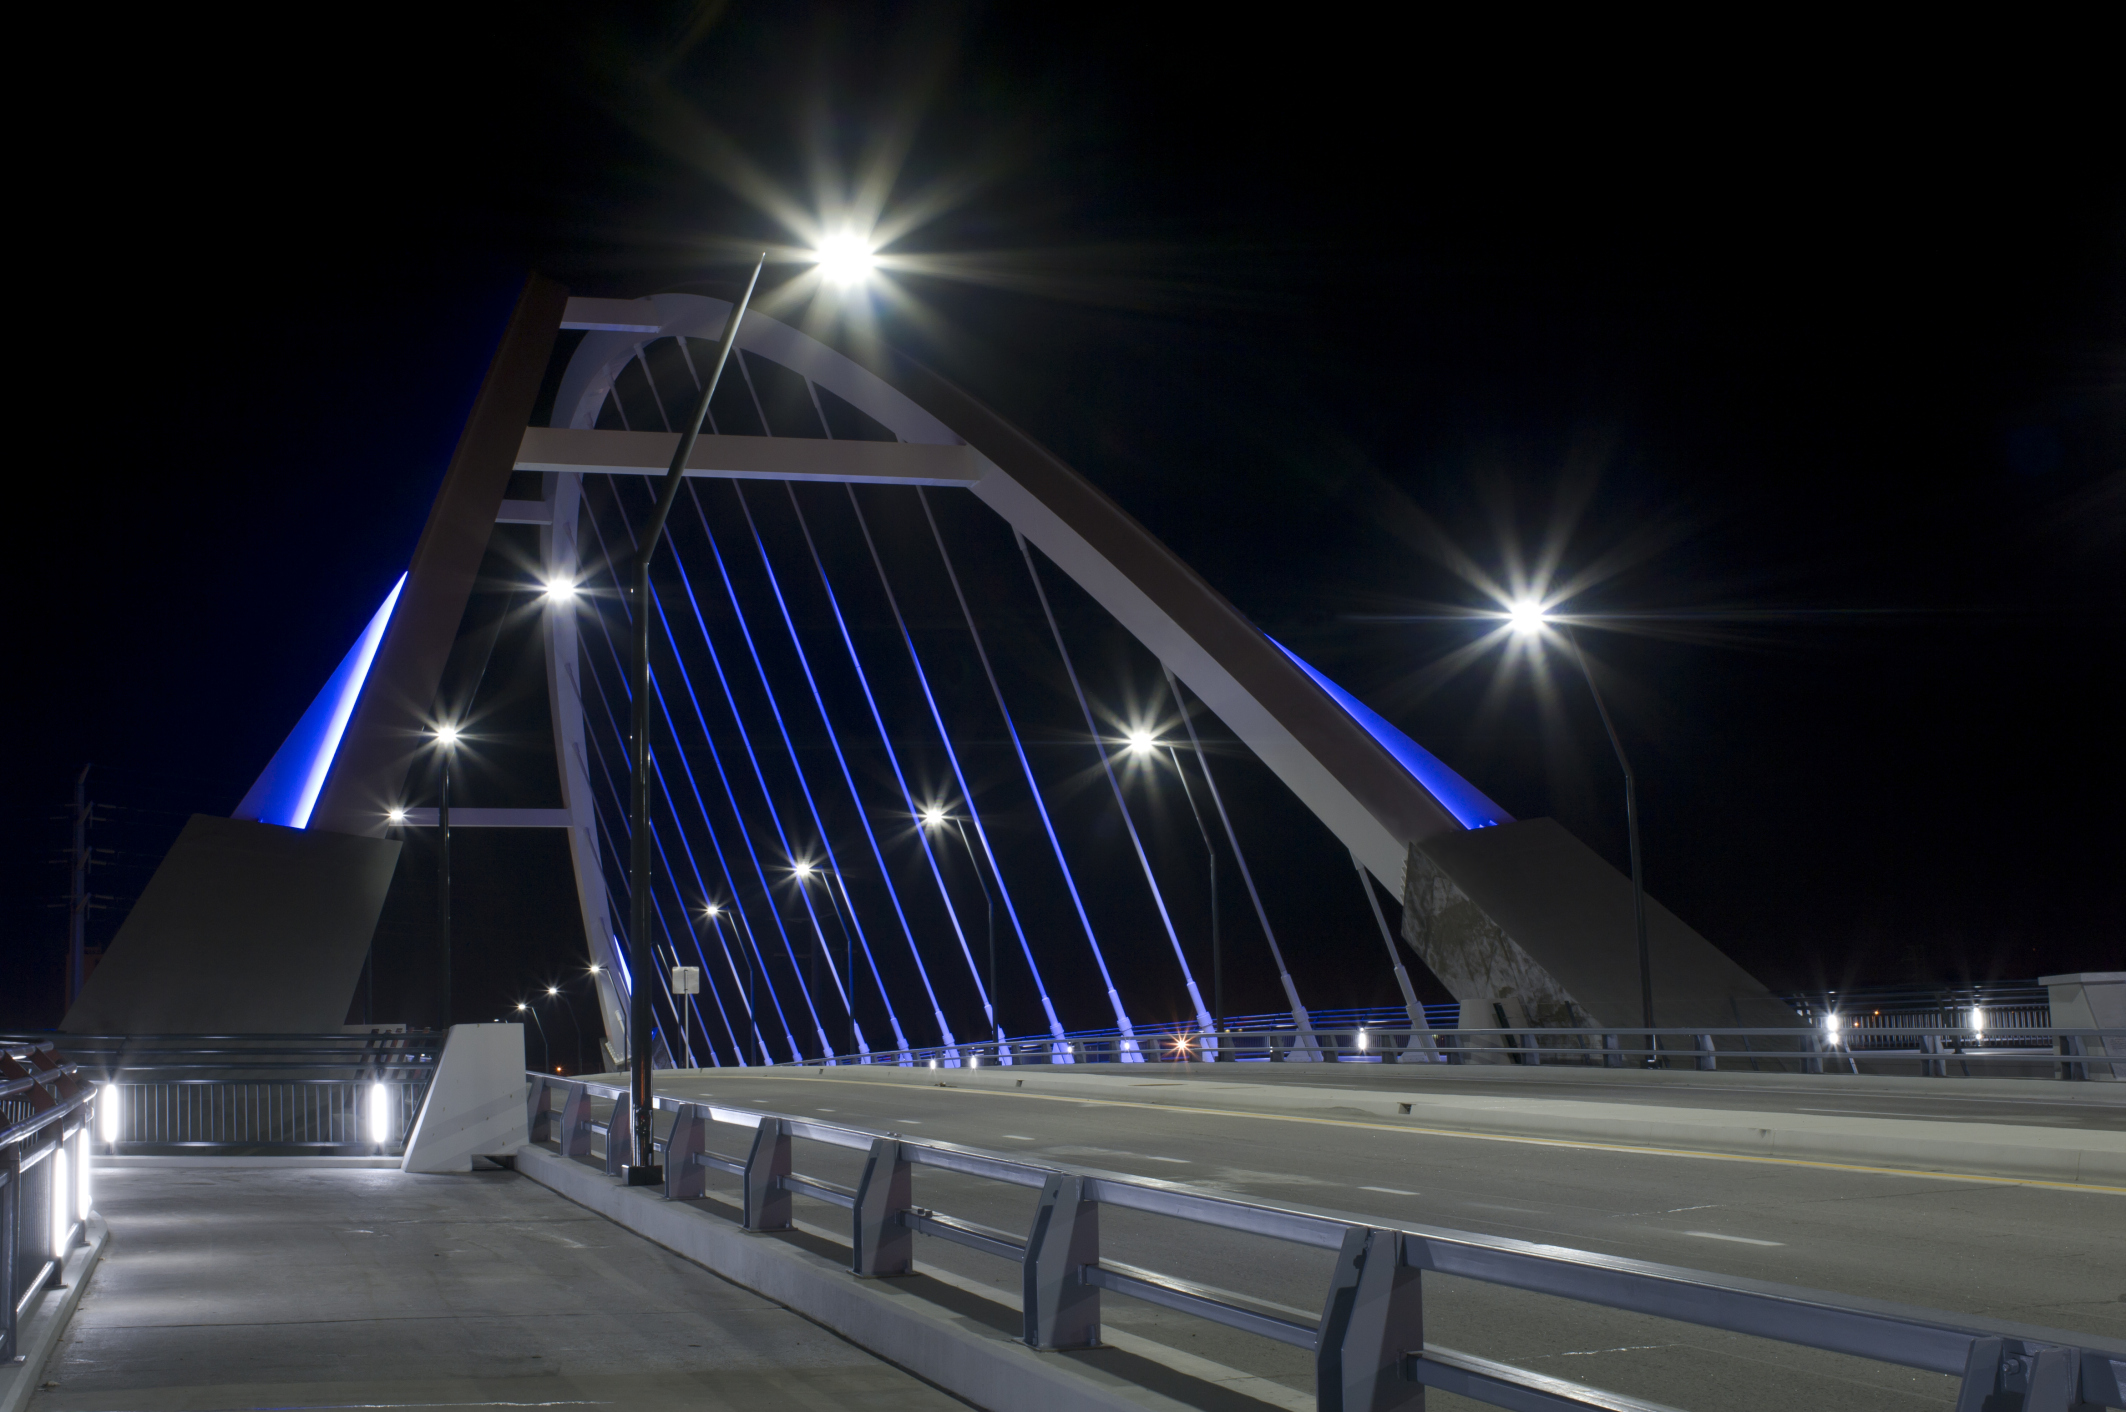 LED Street Lights: Energy Savings Likely to Outweigh Initial Costs ...